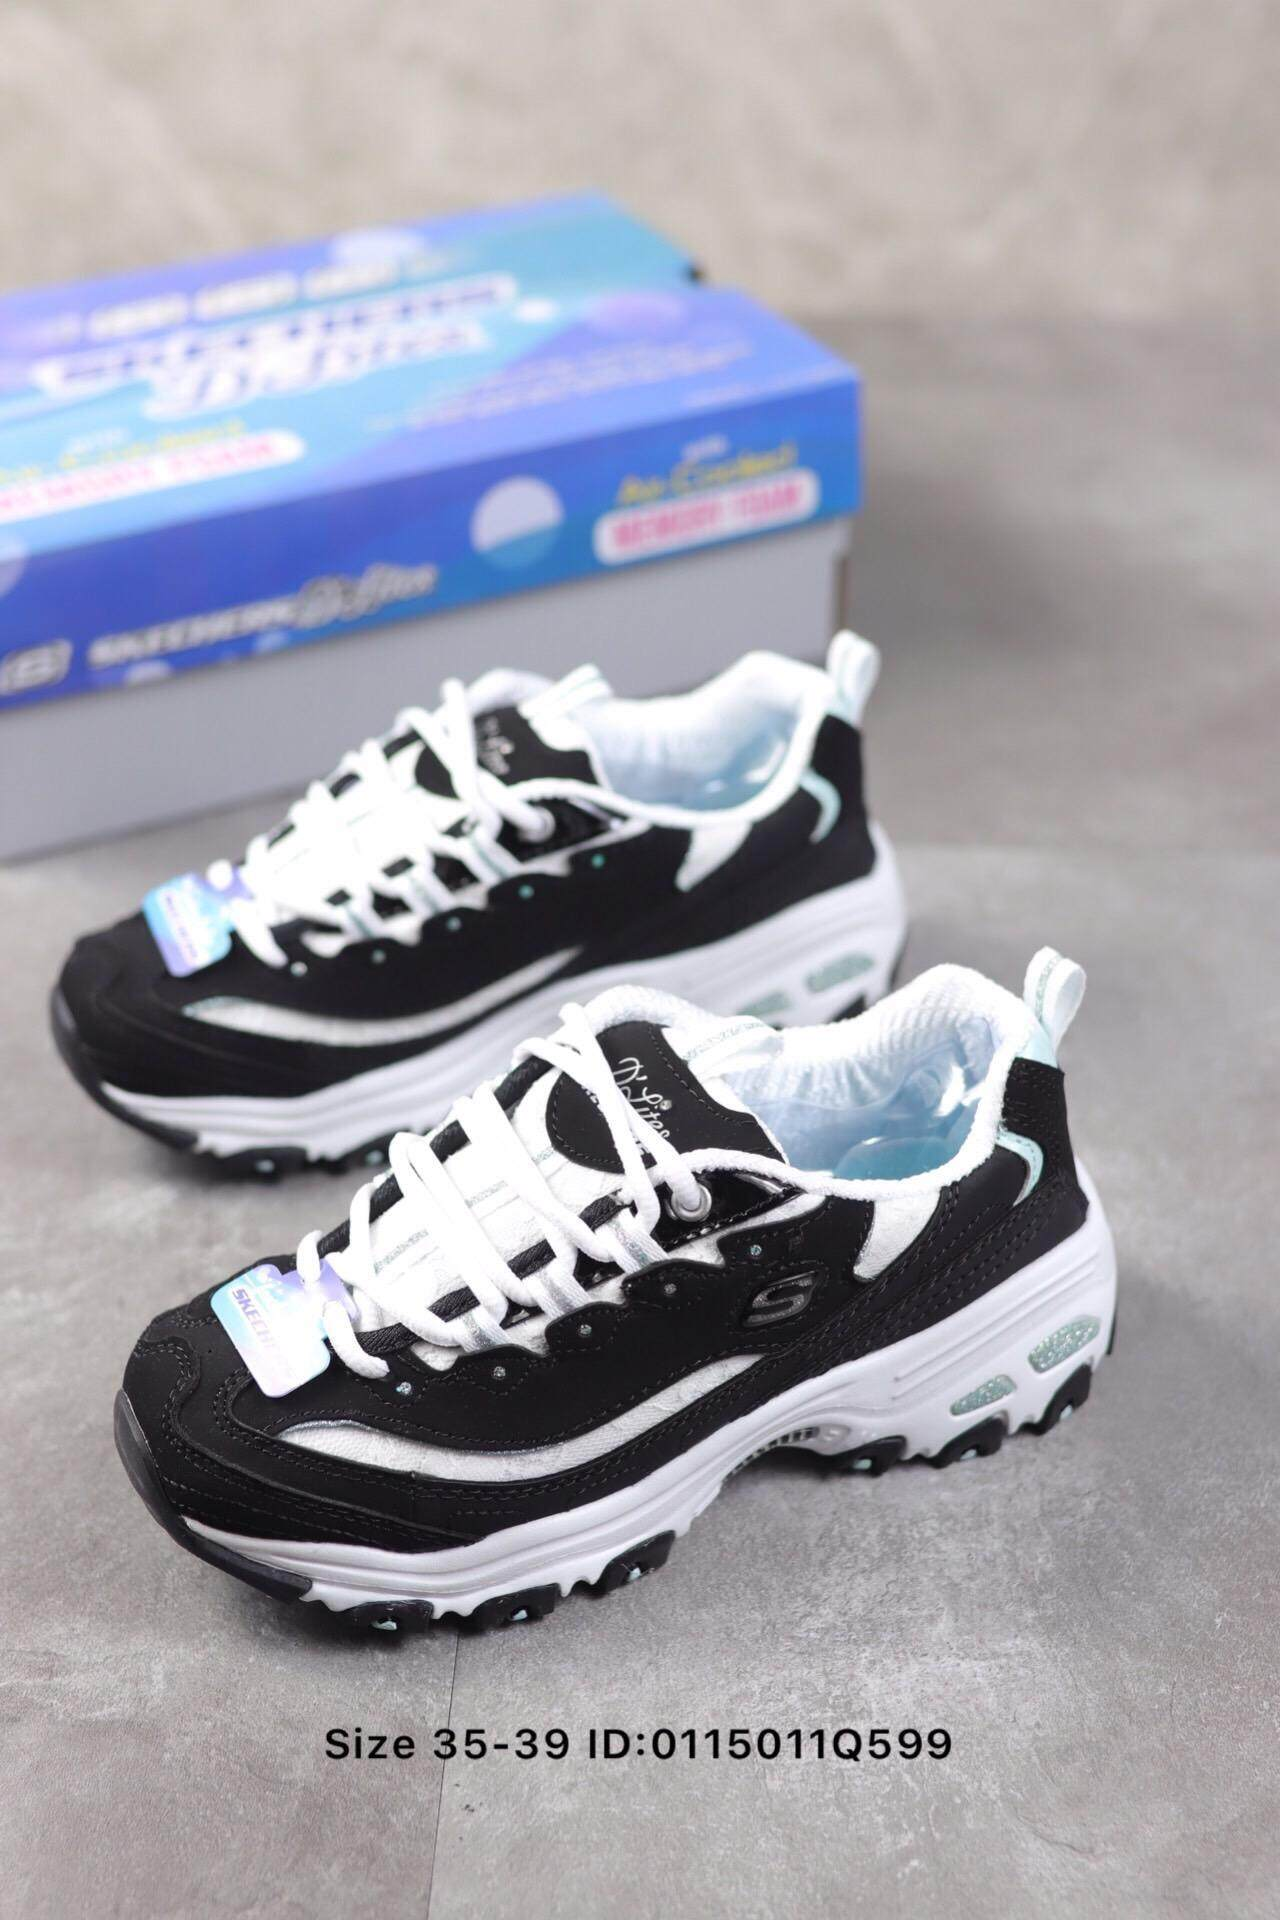 Skechers Dlites Retro Shoes Running Shoes Casual Shoes Fashion Womens Shoes By Cns265.